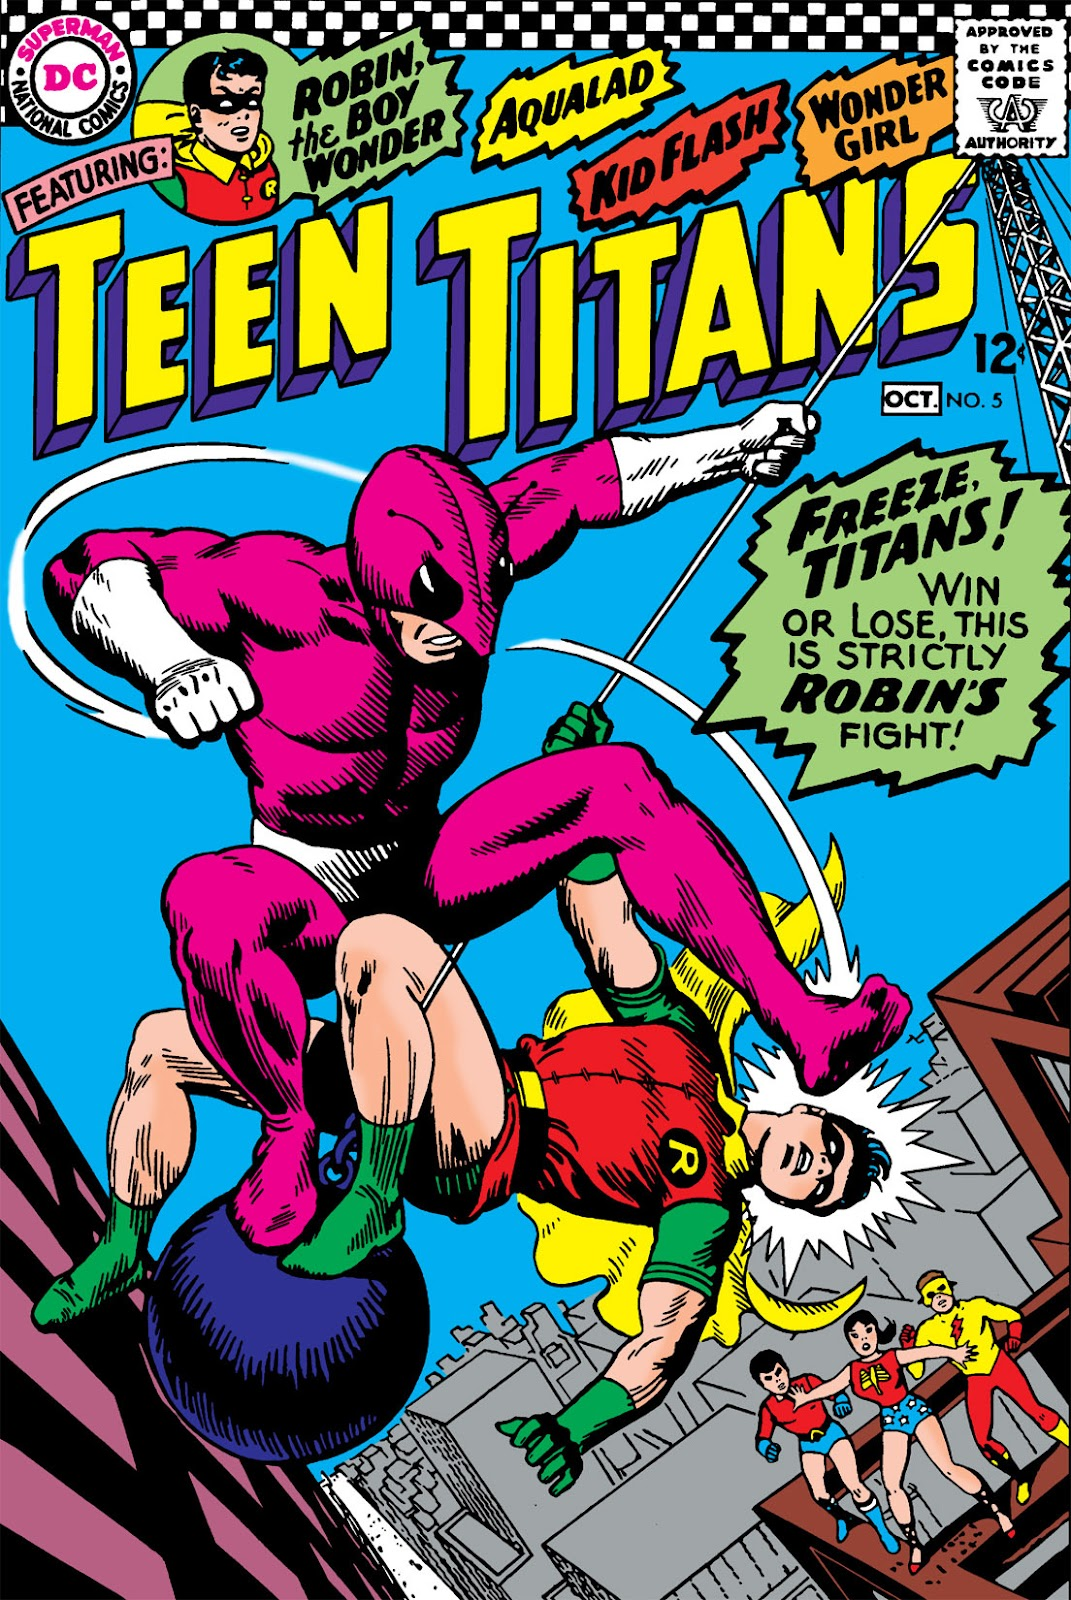 Teen Titans (1966) issue 5 - Page 1